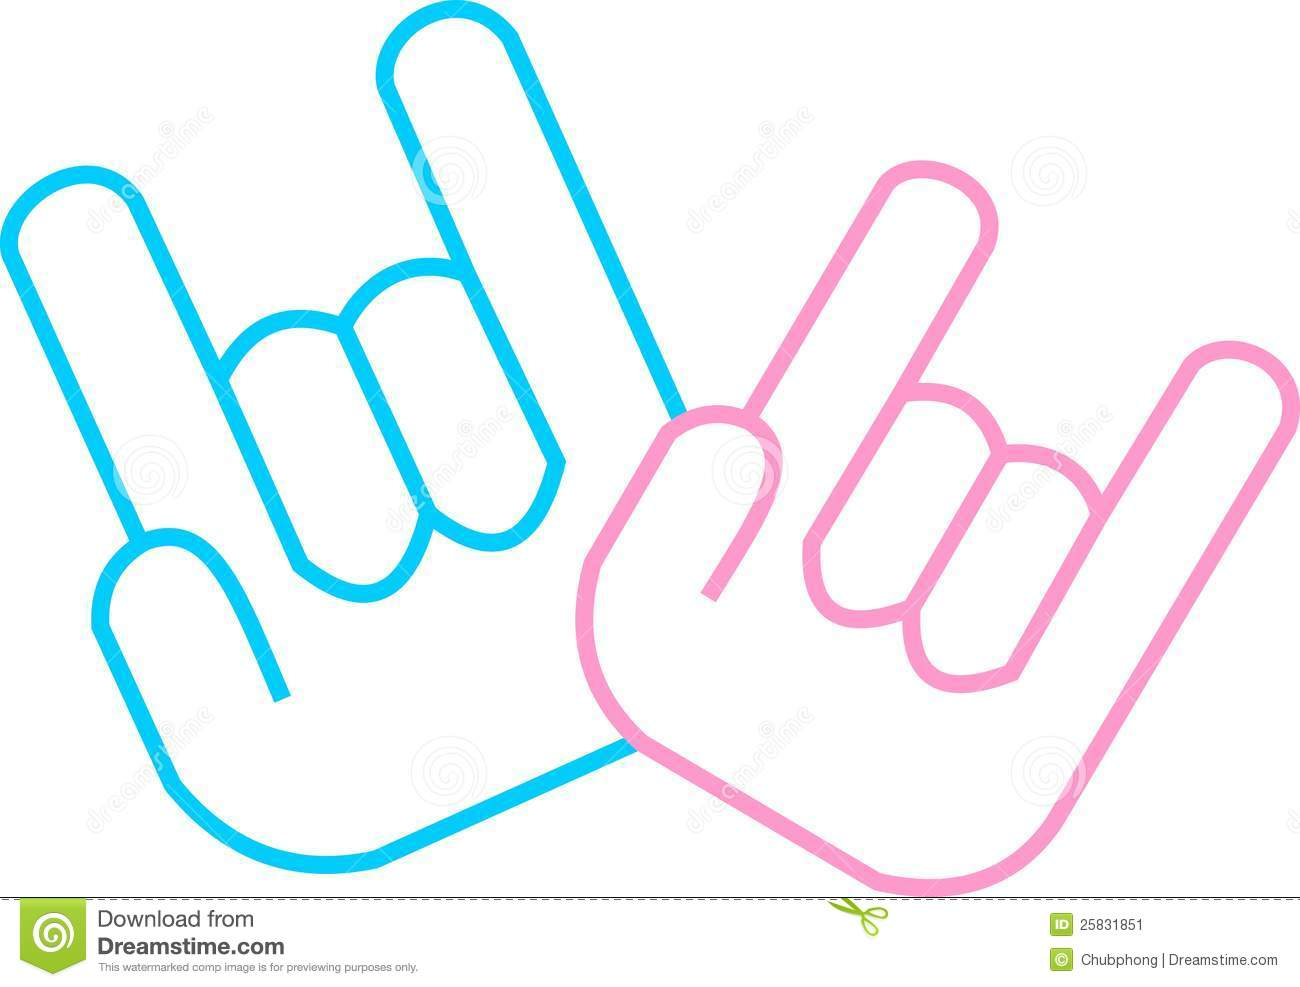 Hand Gesture clipart sign language i love you I love language I you